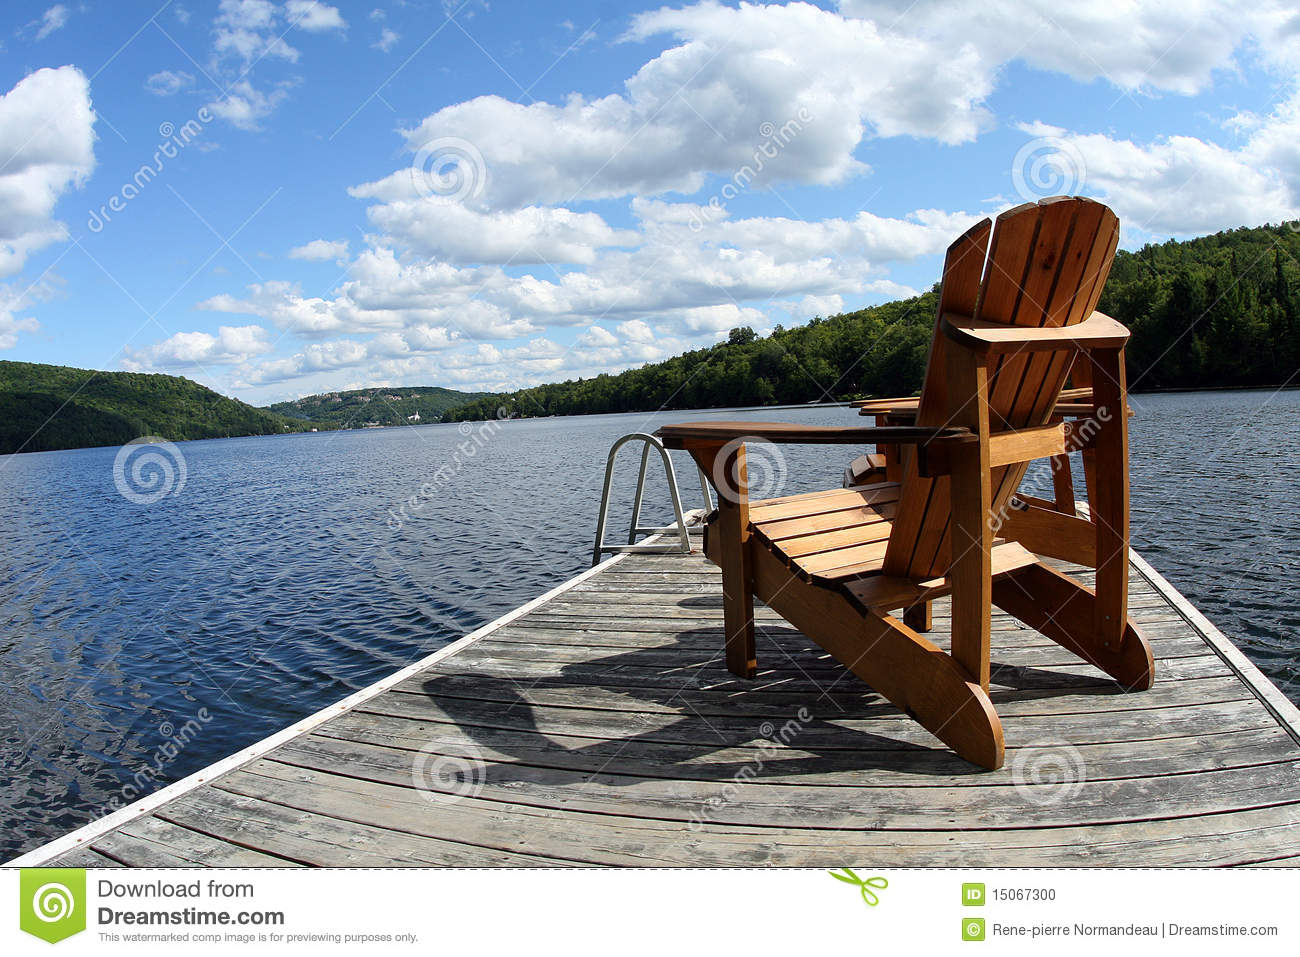 Wood chair on boat deck on the lake